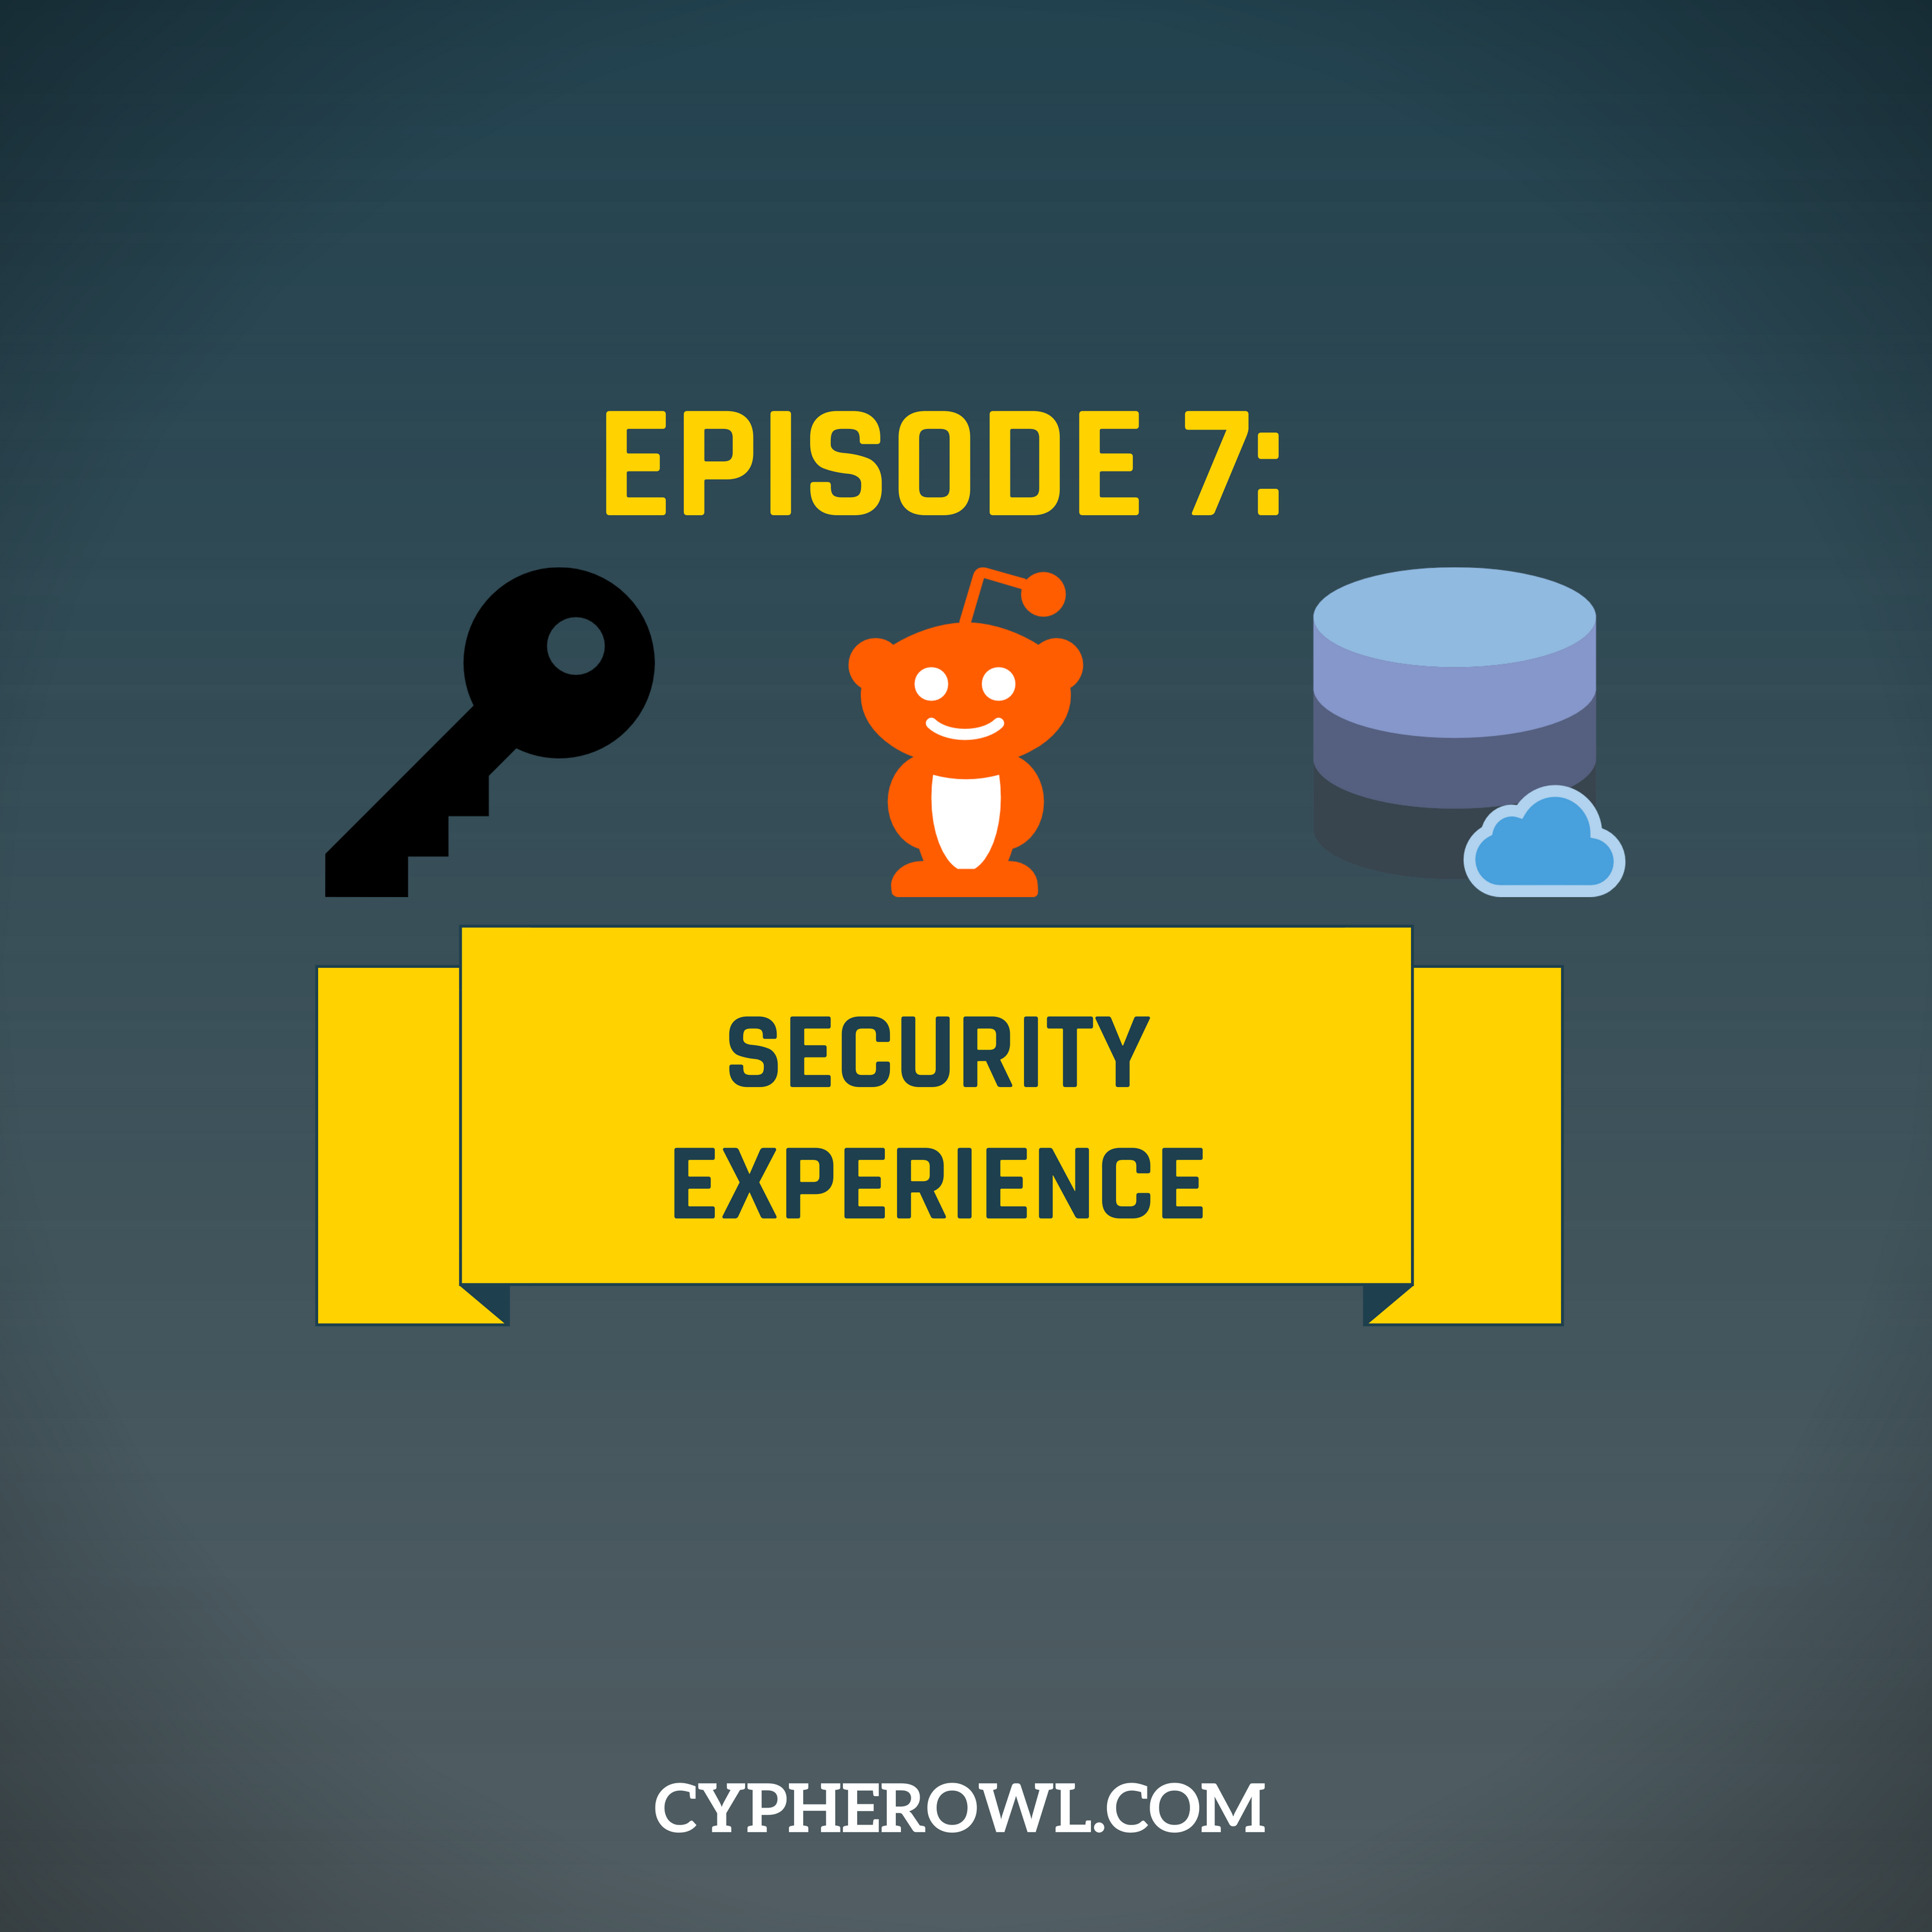 Episode 7: Reddit Data Breach